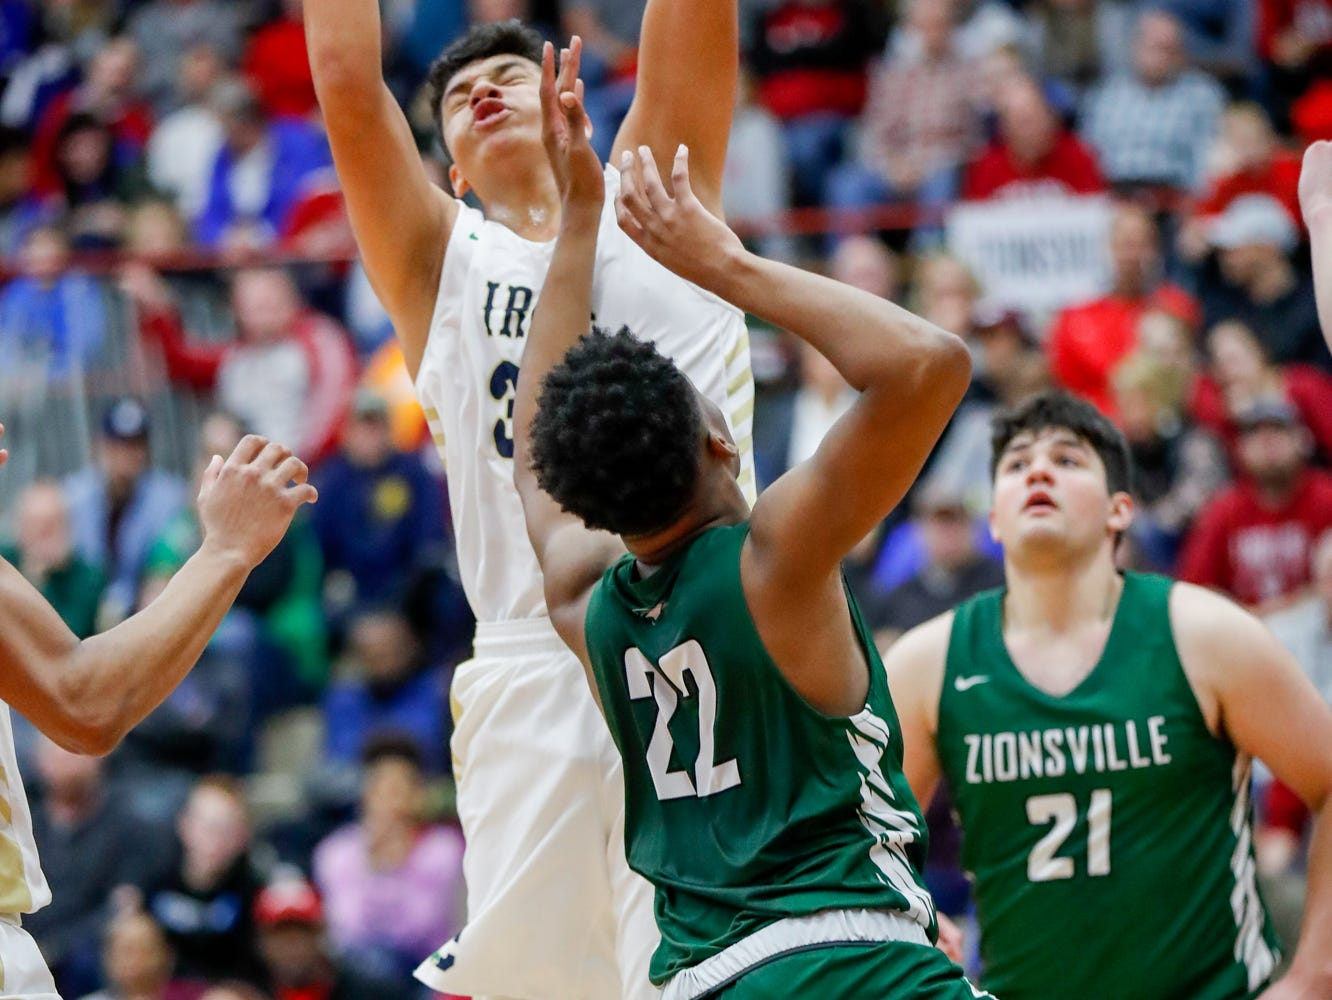 Cathedral High School's forward Isaac Farah (34), Zionsville Community High School's Anthony Scales (22), and teammate Brandon Vernon (21) reach for a rebound during a Tip Off Classic game between Cathedral High School and Zionsville Community High School, held at the Southport Fieldhouse, on Saturday, Dec. 8, 2018.